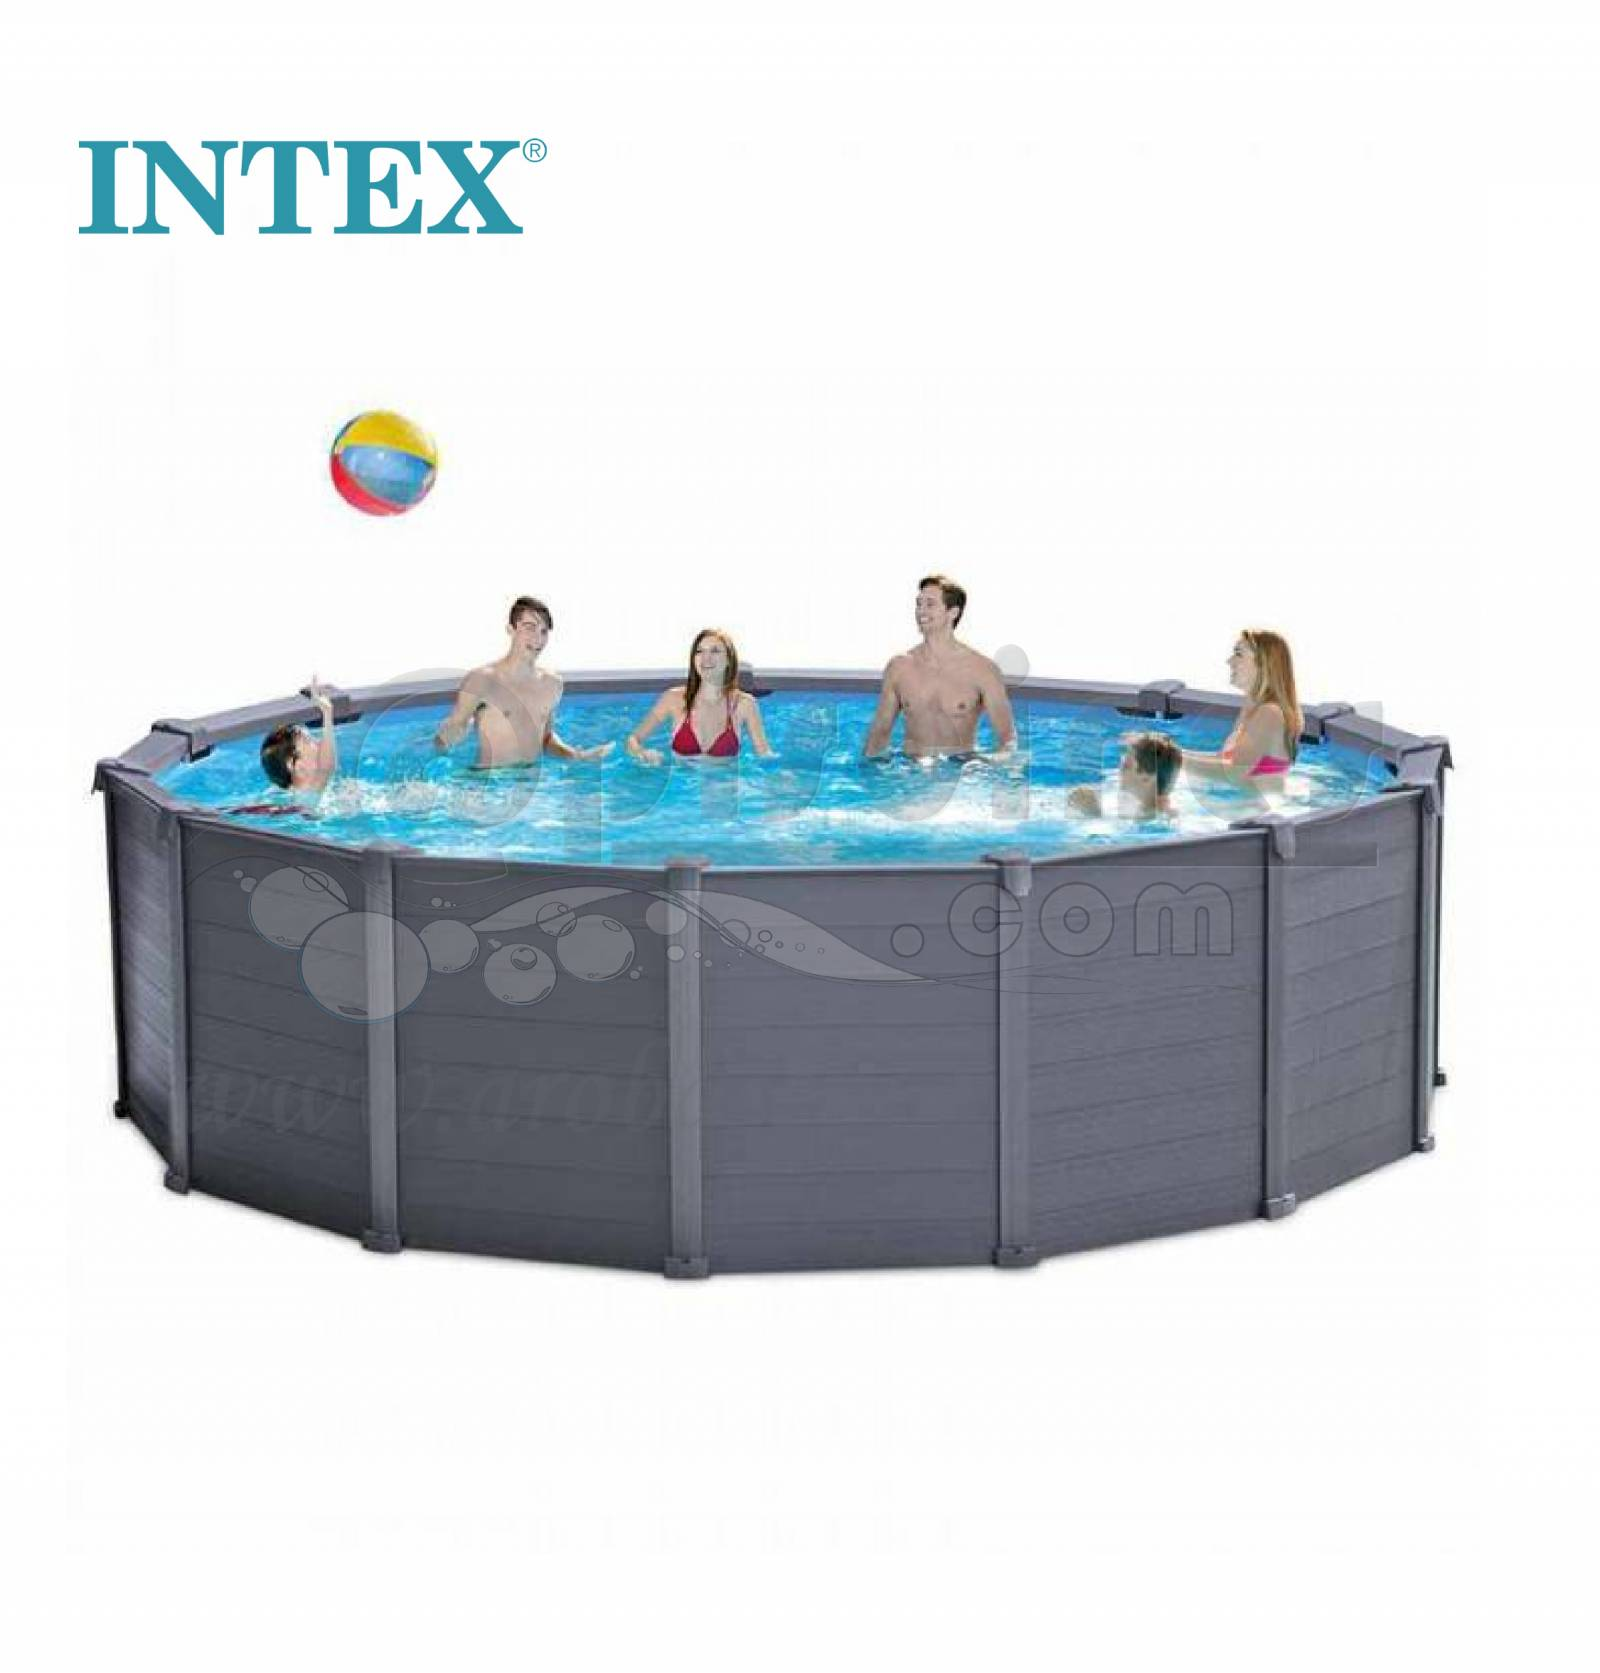 piscine tubulaire hors sol ronde 4 78m intex graphite. Black Bedroom Furniture Sets. Home Design Ideas